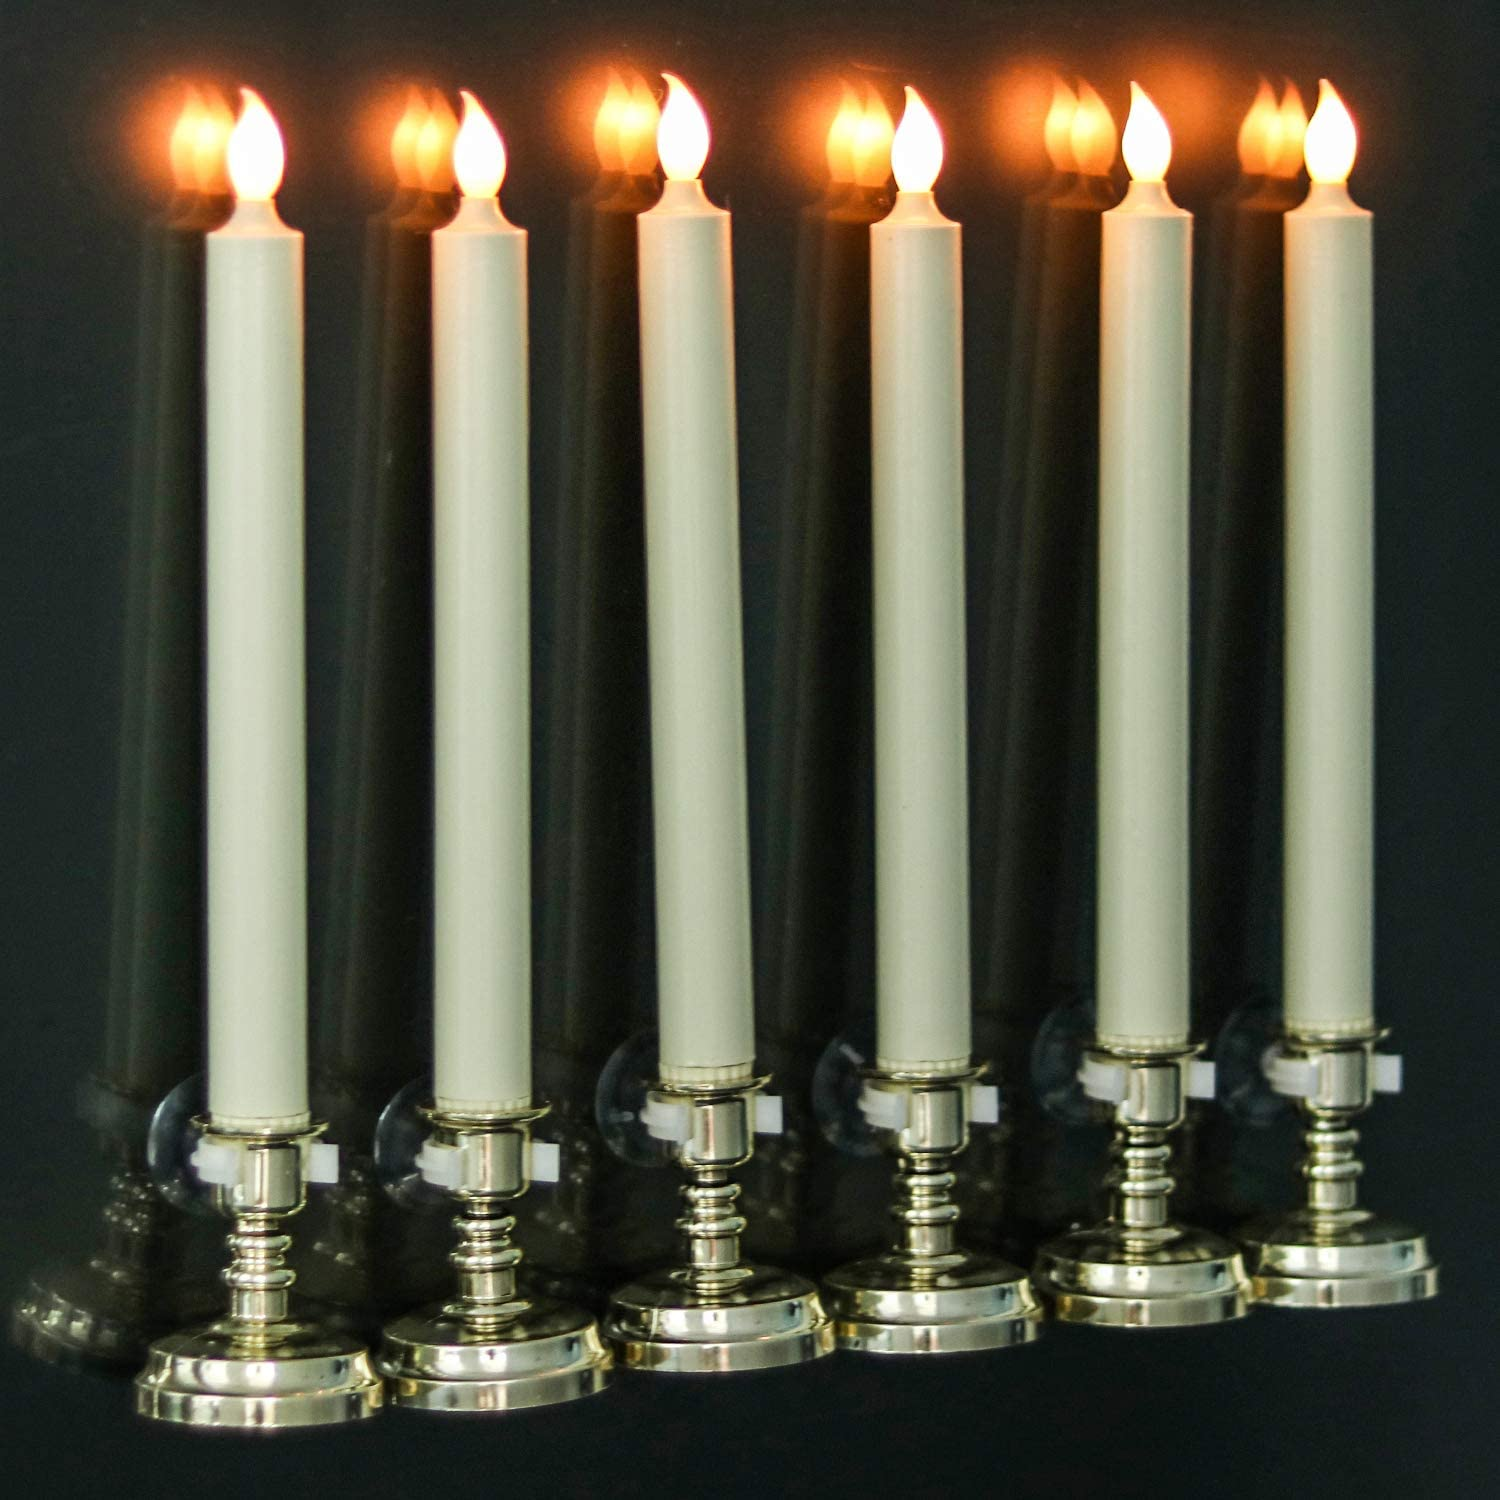 Wondise Remote Flameless Window Taper Candles with Timer and Suction Cups, Battery Operated LED Flickering Window Candles Real Wax Warm Light Christmas Decoration Set of 6(Gold Holders)